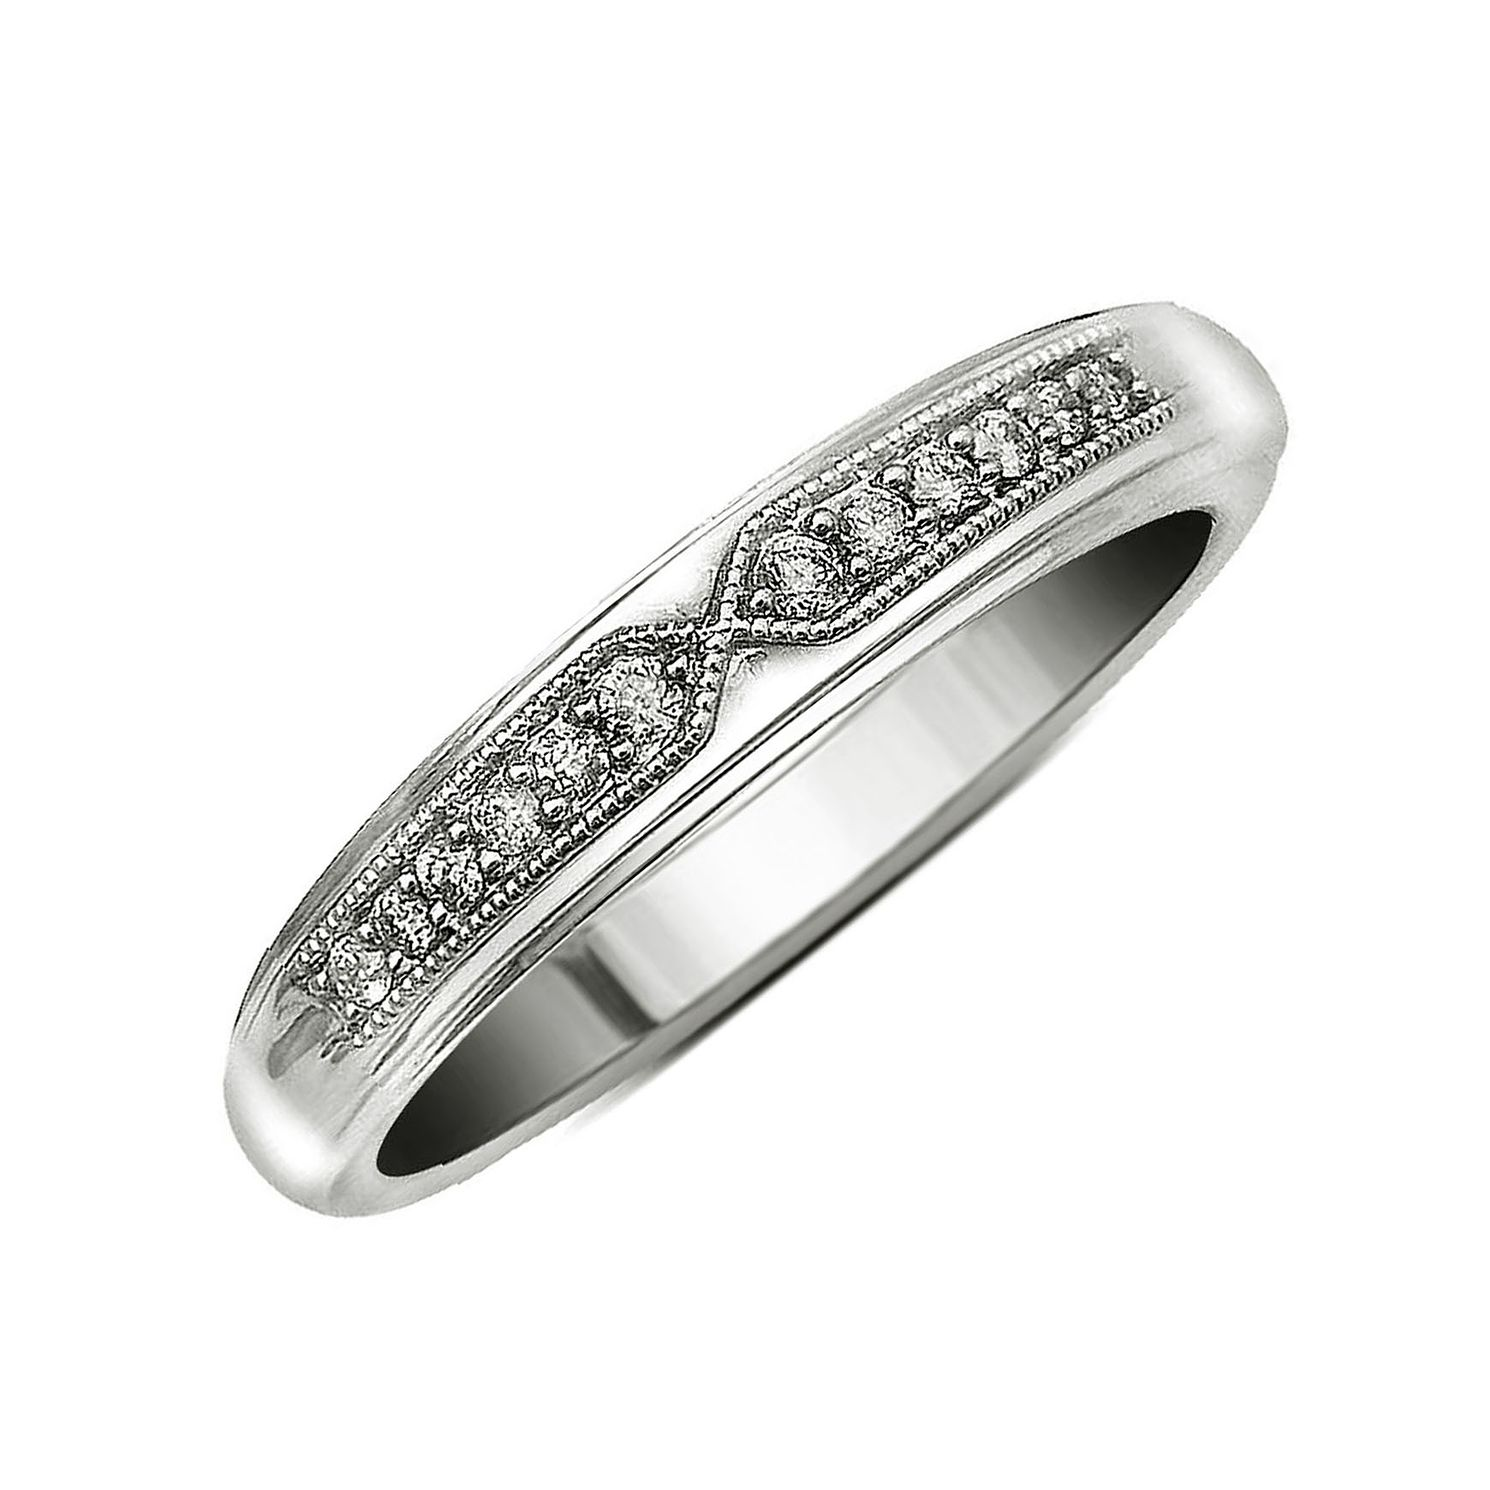 Perfect Fit 18ct White Gold & Diamond Eternity Ring - Product number 9437908